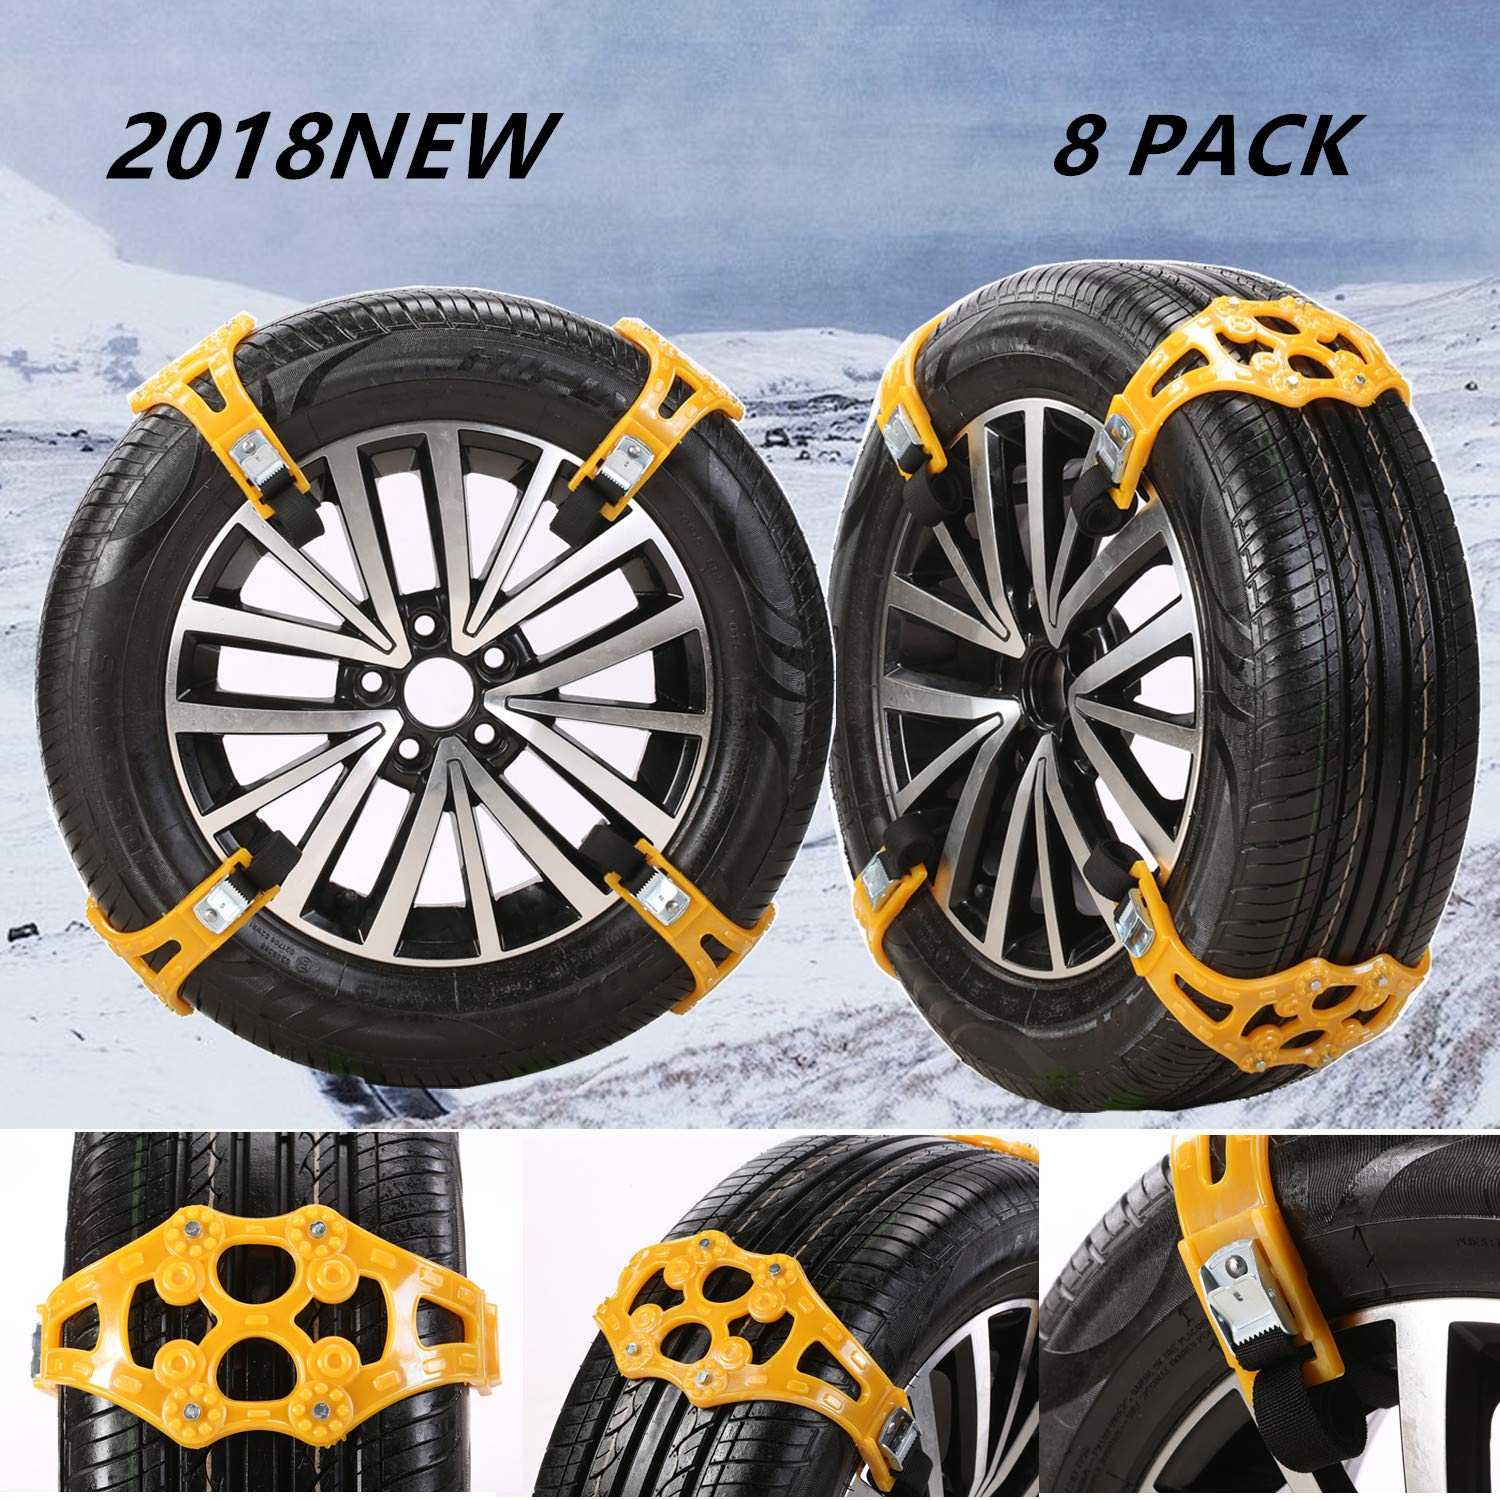 """JOJOMARK Snow Tire Chains for Cars SUV Truck ATV Anti-Skip for Safety Emergency Ice Snow Mud Sand with 2018 Upgrade TPU Width 6.5"""" -10.8"""" (165mm-275mm)(8 Pack) JOJOMARK Direct"""